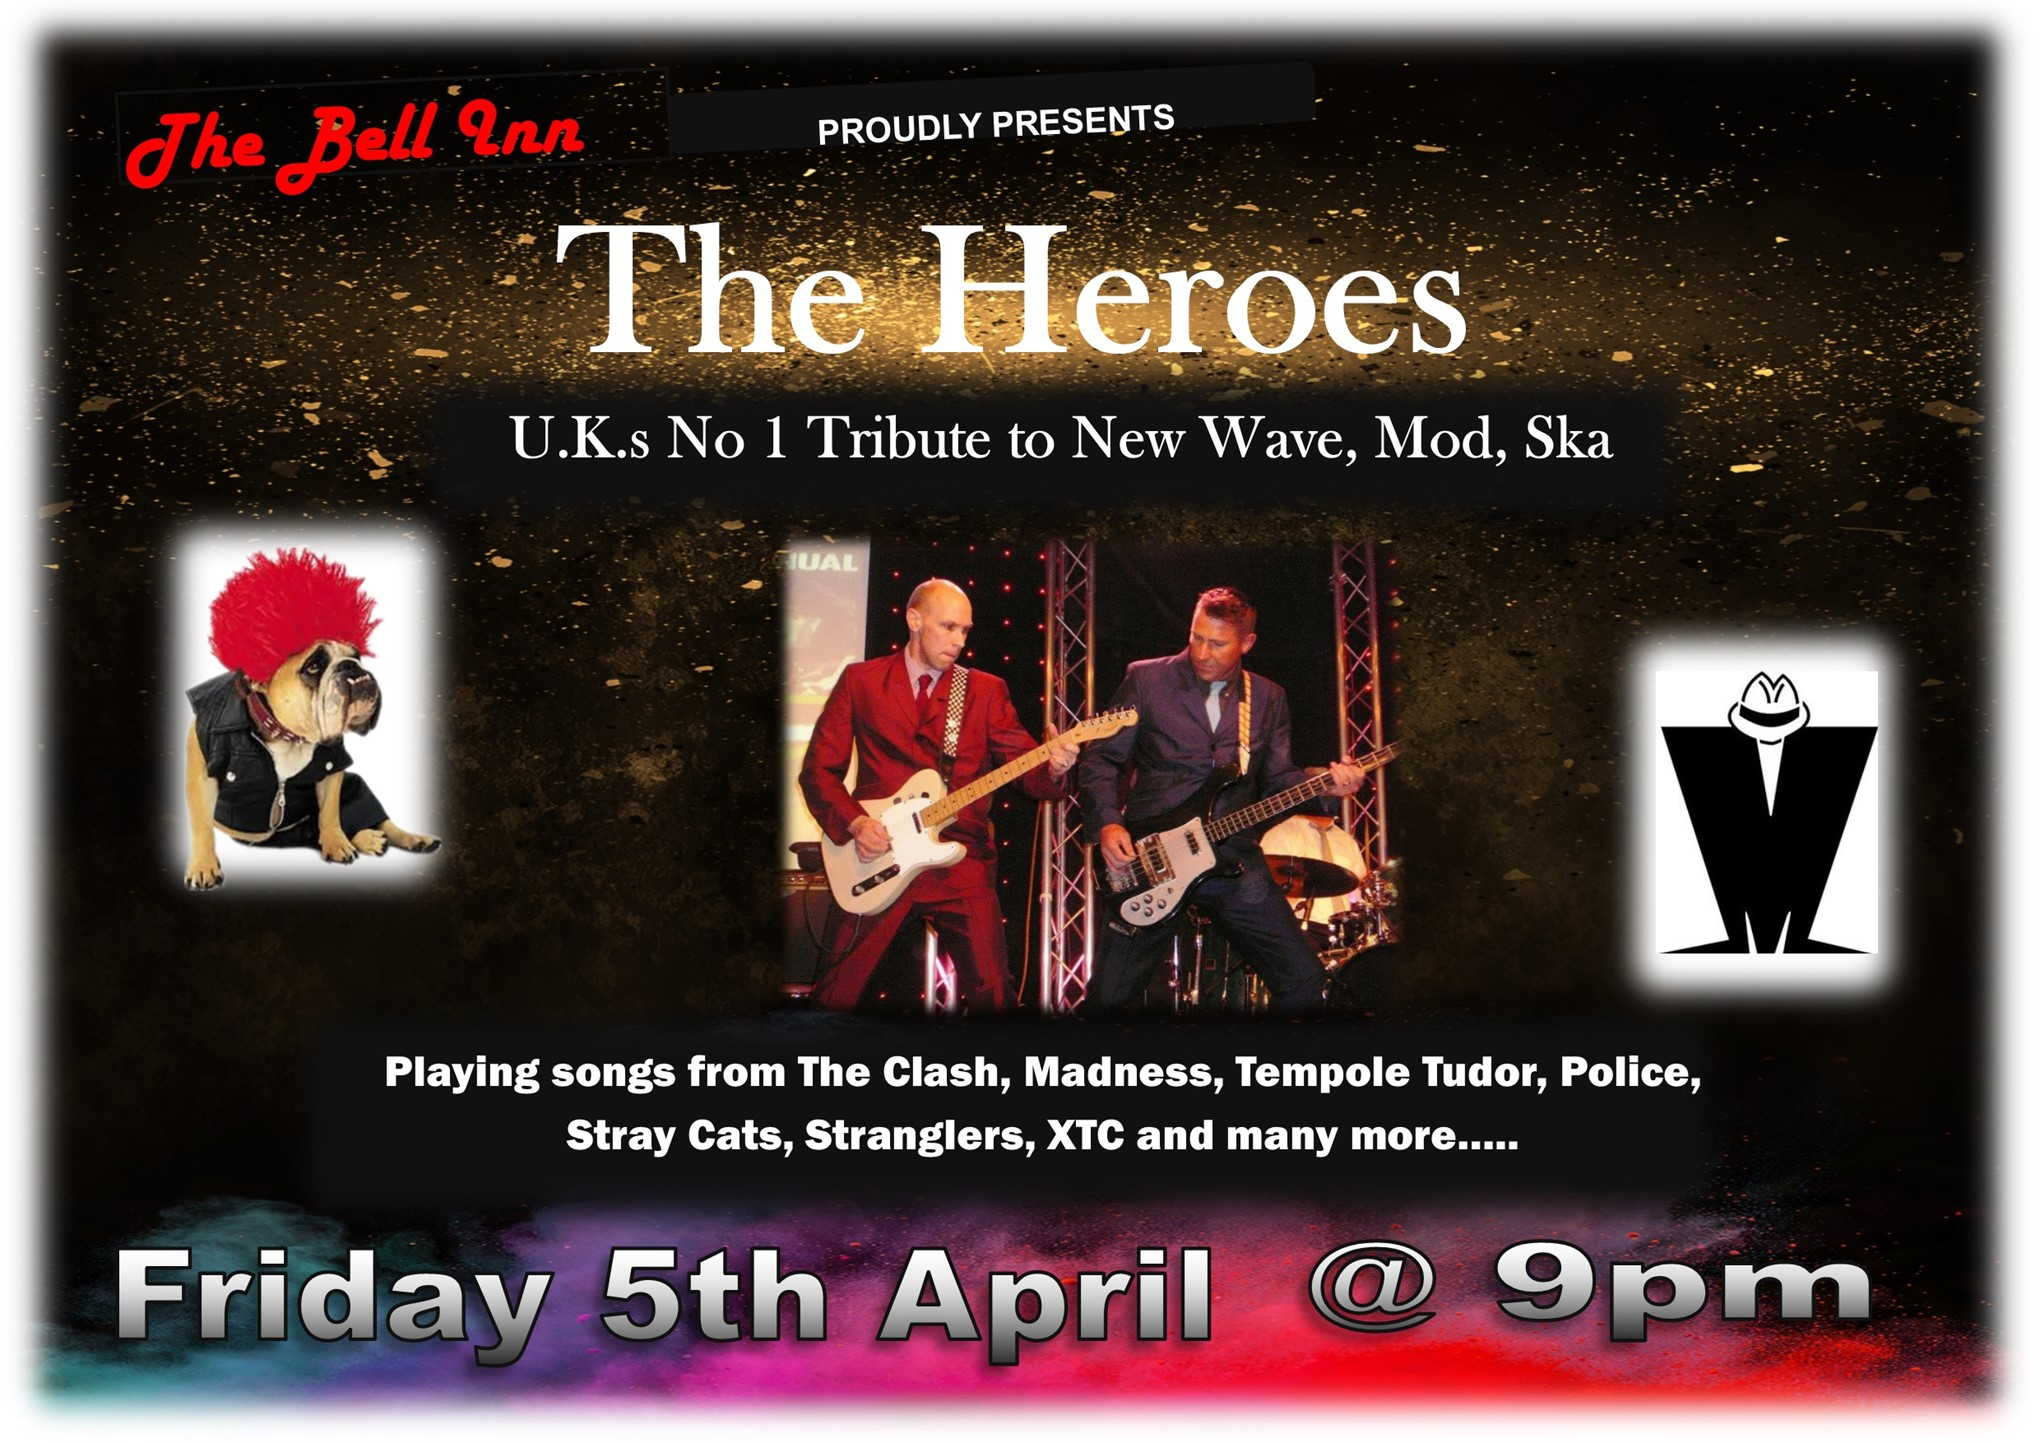 Live Music with The Heroes